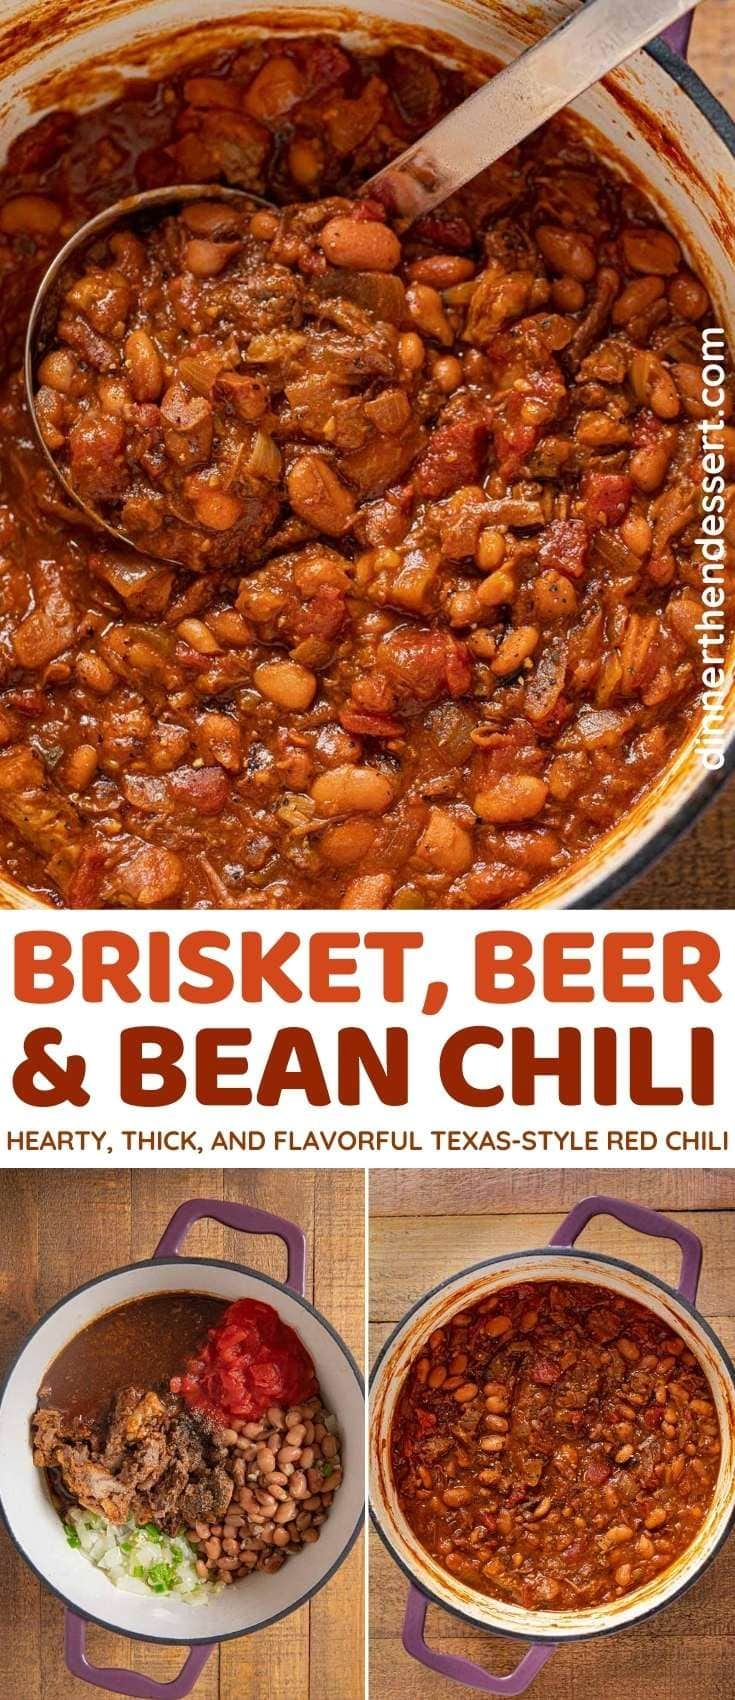 Brisket Beer And Bean Chili Is A Hearty Thick And Flavorful Texas Style Red Chili Made With Leftover Brisket Chili Recipe Leftovers Recipes Mild Chili Recipe